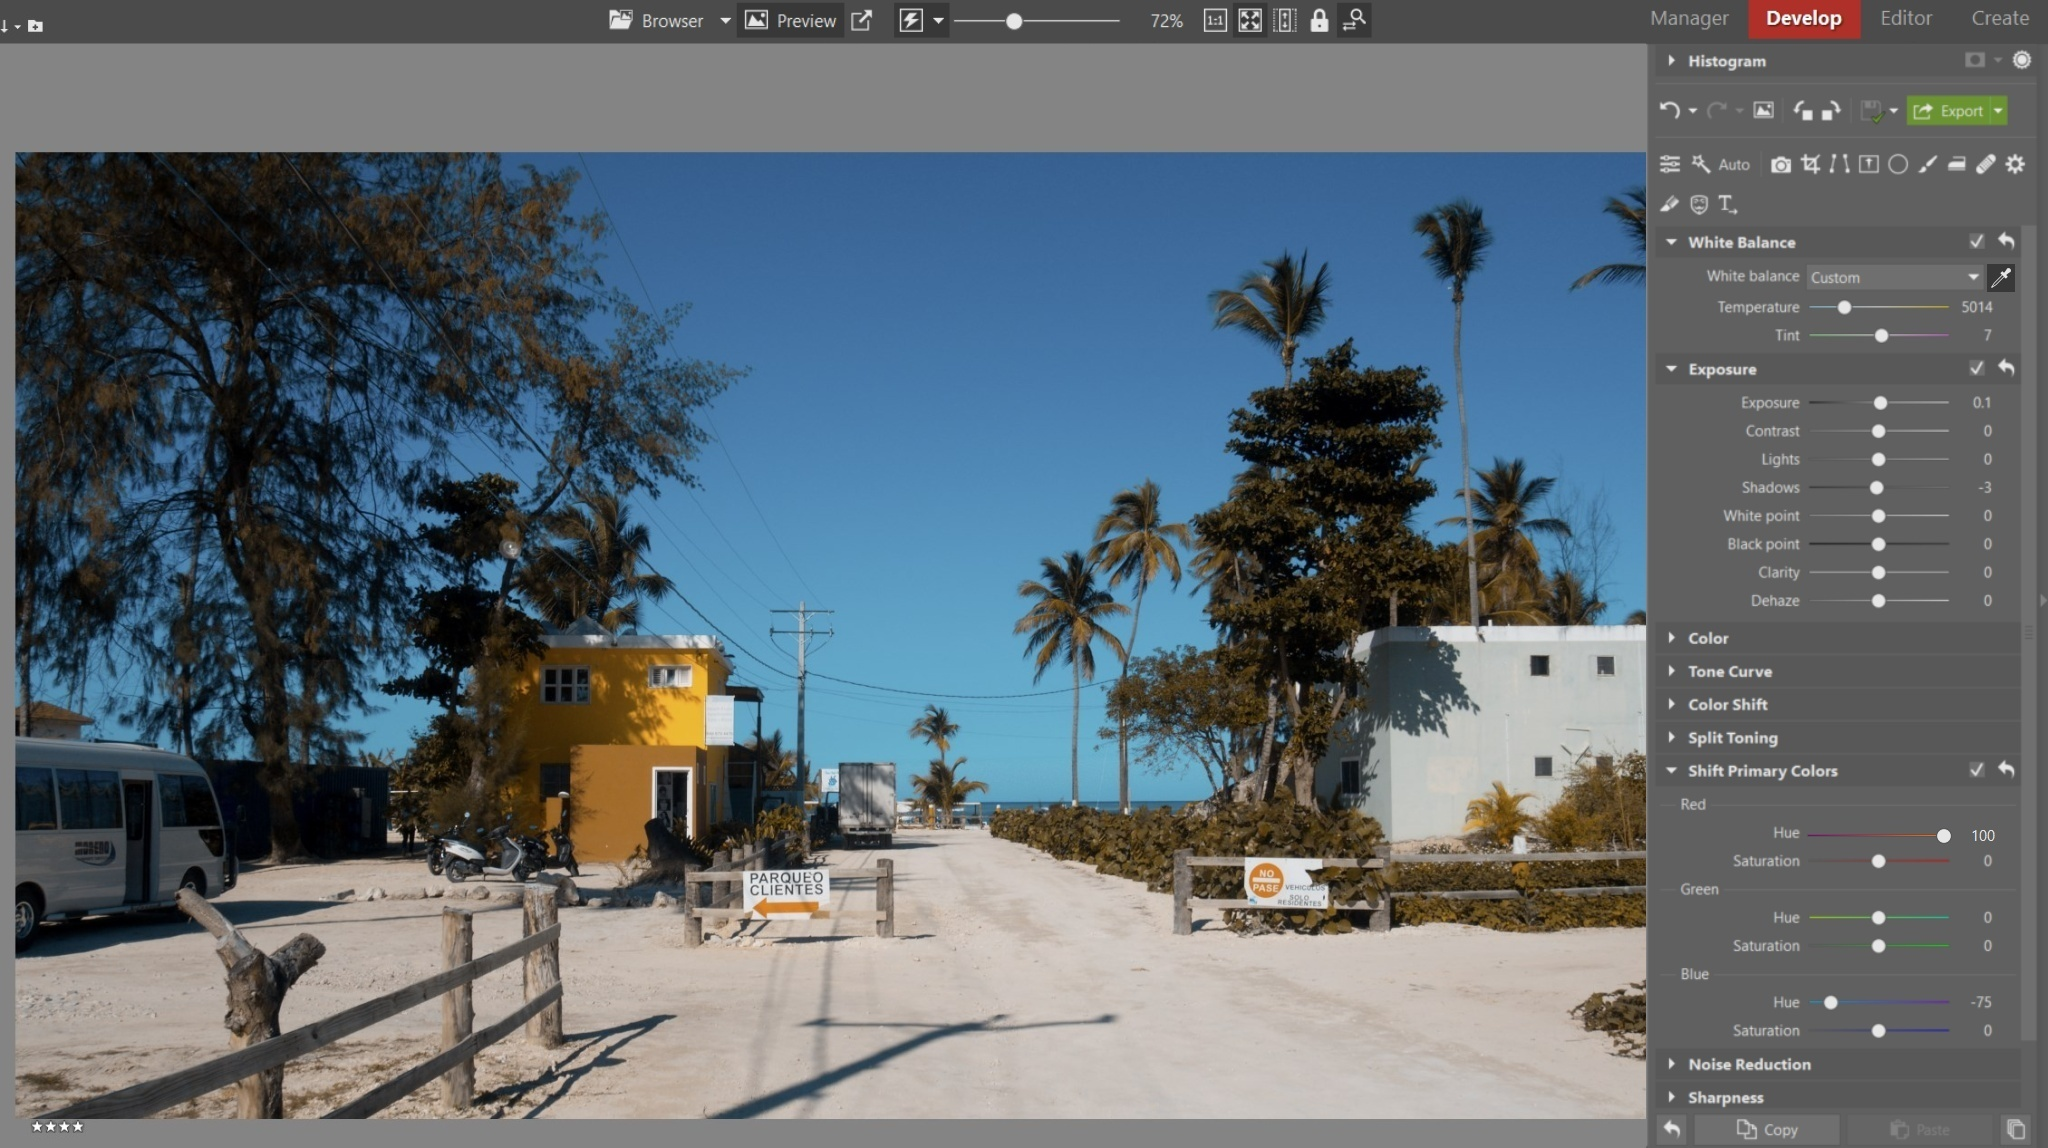 Color grading step-by-step III: How to get the popular Teal & Orange look